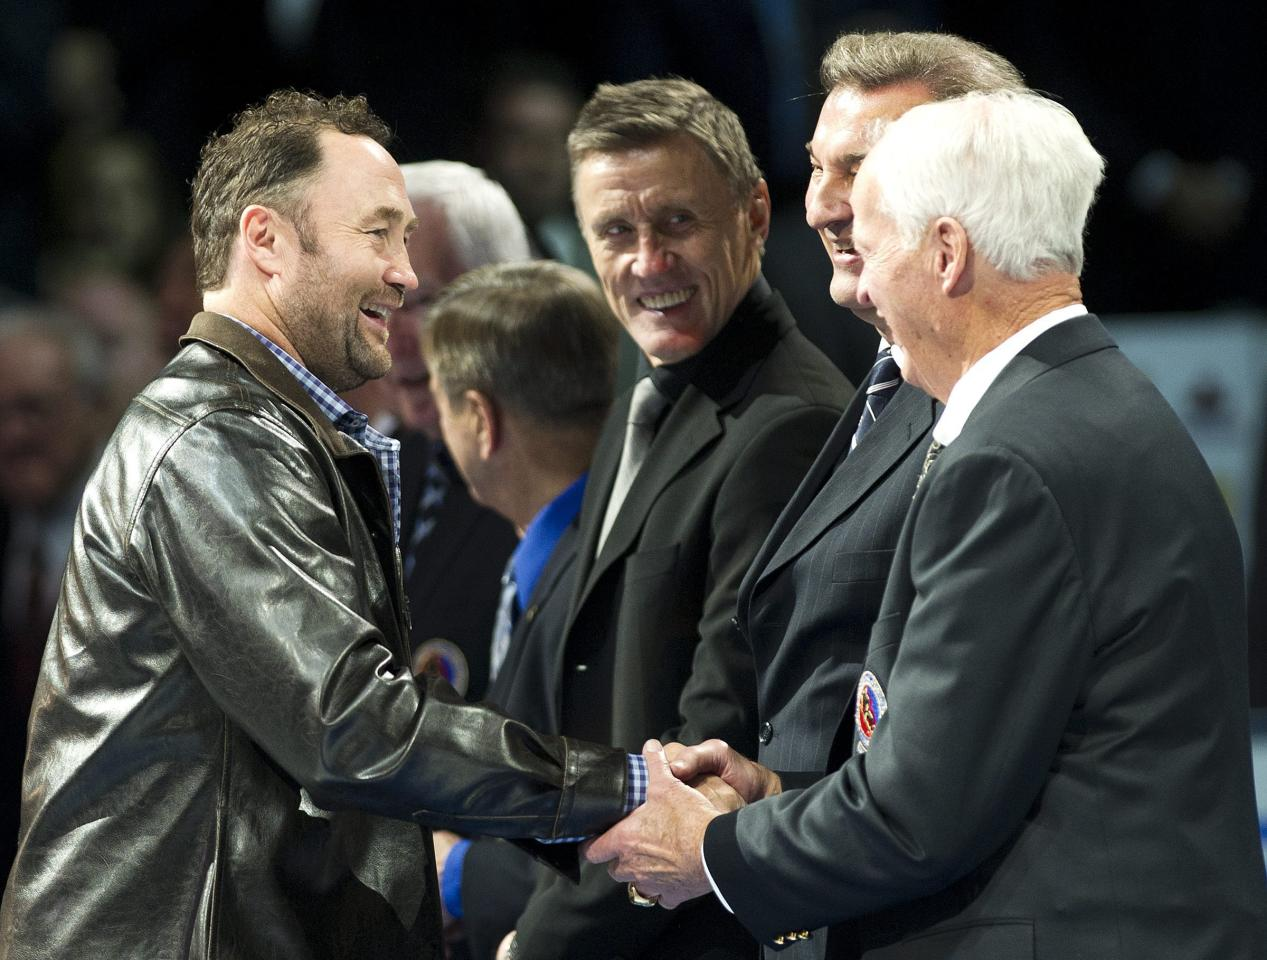 Hall of Fame inductee Ed Belfour, left, shakes hands with Gordie Howe, right, as he takes part in a ceremony before an NHL hockey game between the Toronto Maple Leafs and the Ottawa Senators, Saturday, Nov. 12, 2011, in Toronto. (AP Photo/The Canadian Press, Nathan Denette)